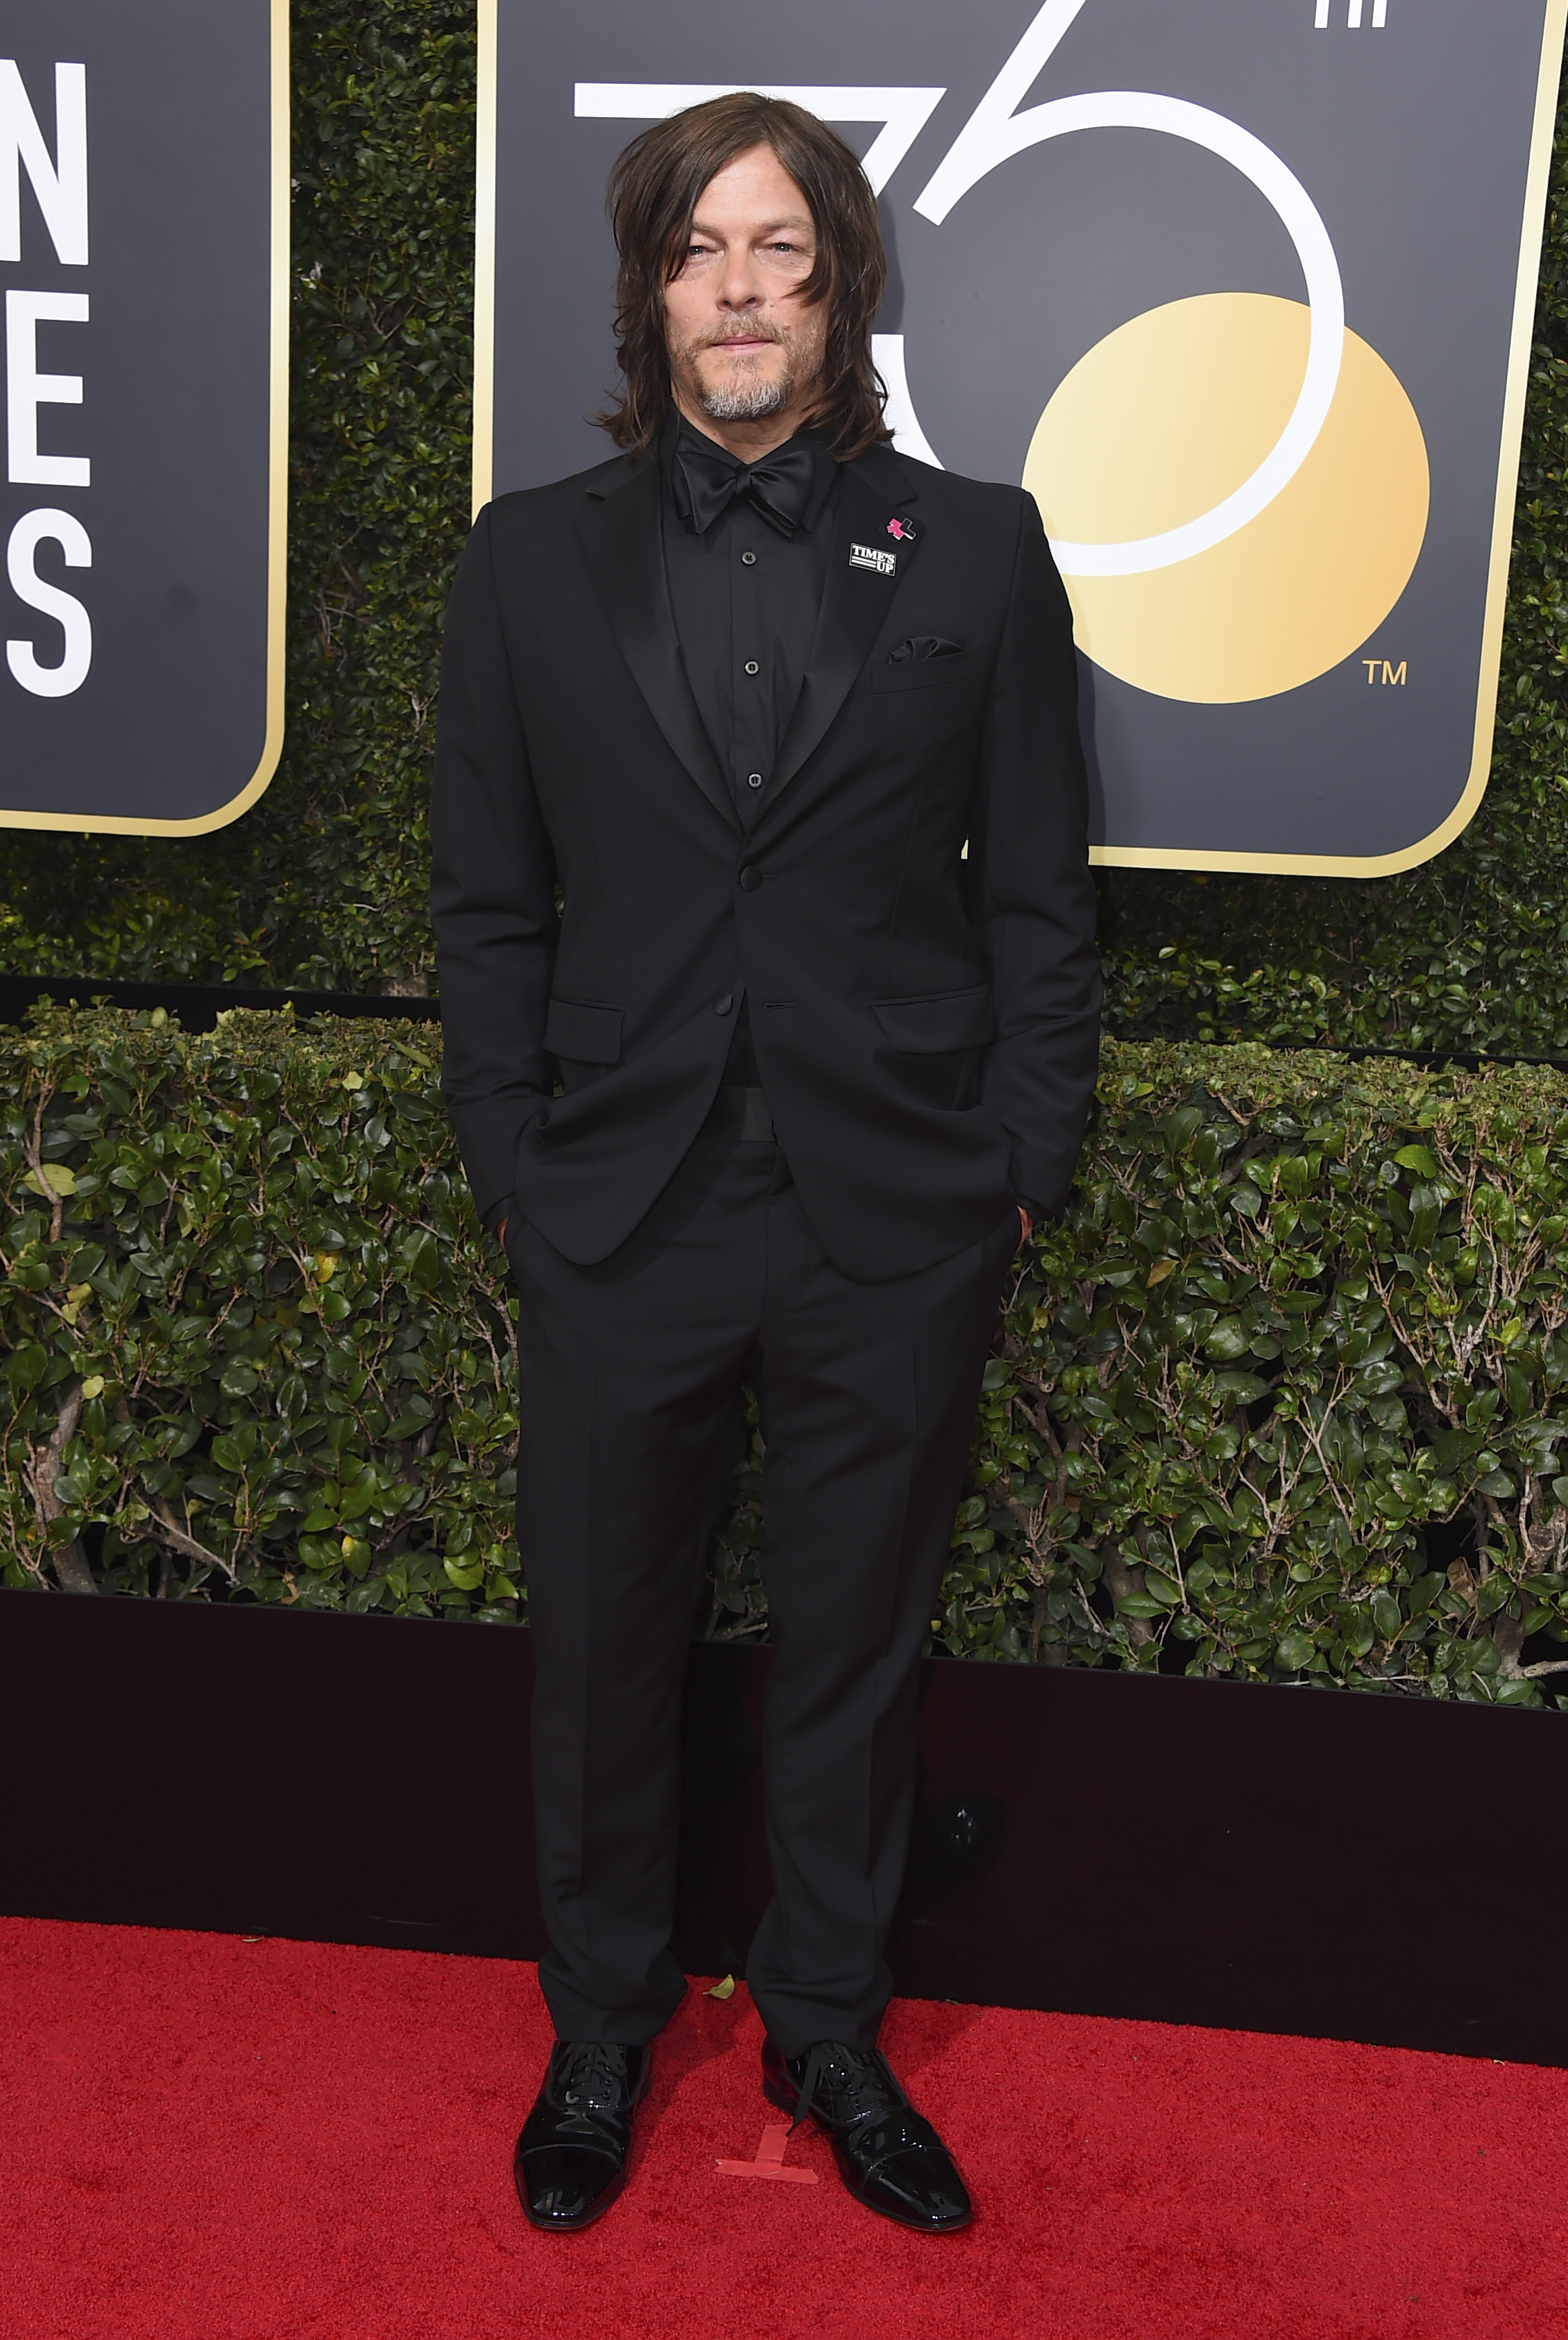 <div class='meta'><div class='origin-logo' data-origin='AP'></div><span class='caption-text' data-credit='Jordan Strauss/Invision/AP'>Norman Reedus arrives at the 75th annual Golden Globe Awards at the Beverly Hilton Hotel on Sunday, Jan. 7, 2018, in Beverly Hills, Calif.</span></div>